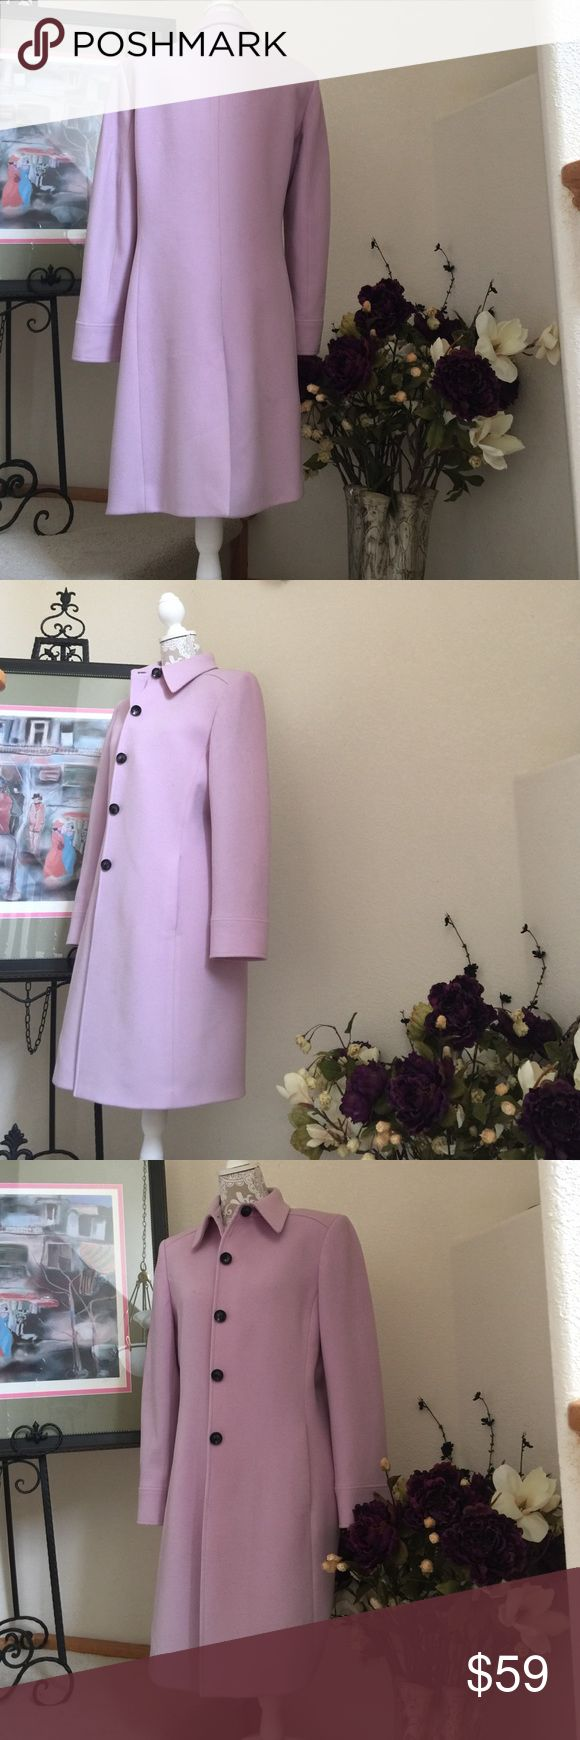 Lavender 100% Wool Jacket Beautiful, well crafted of high quality lighter weight wool. Perfect fit early spring weather. No designer label, but not a cheap coat. Generous Small or Medium. Will fit 6-8. You will love this jacket and not have buyers remorse. Jackets & Coats